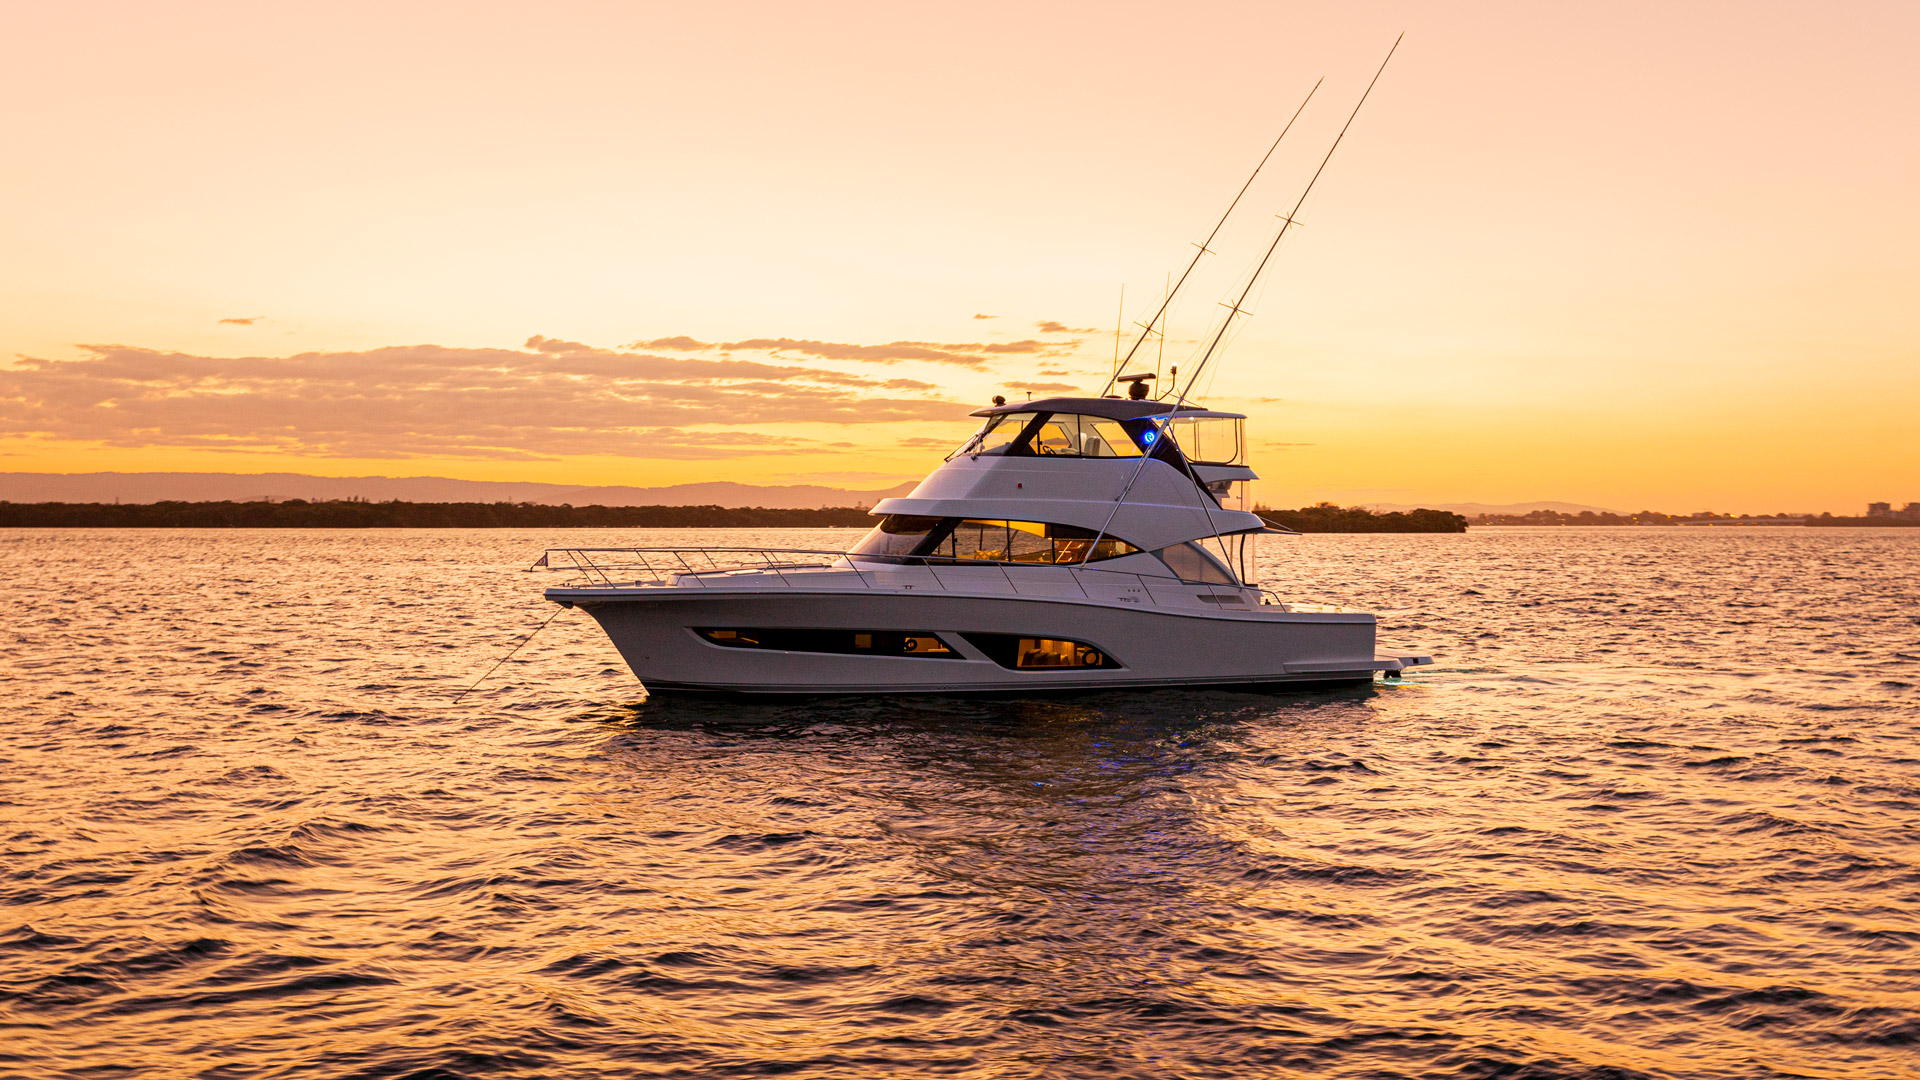 Riviera 50 Sports Motor Yacht Sunset 05